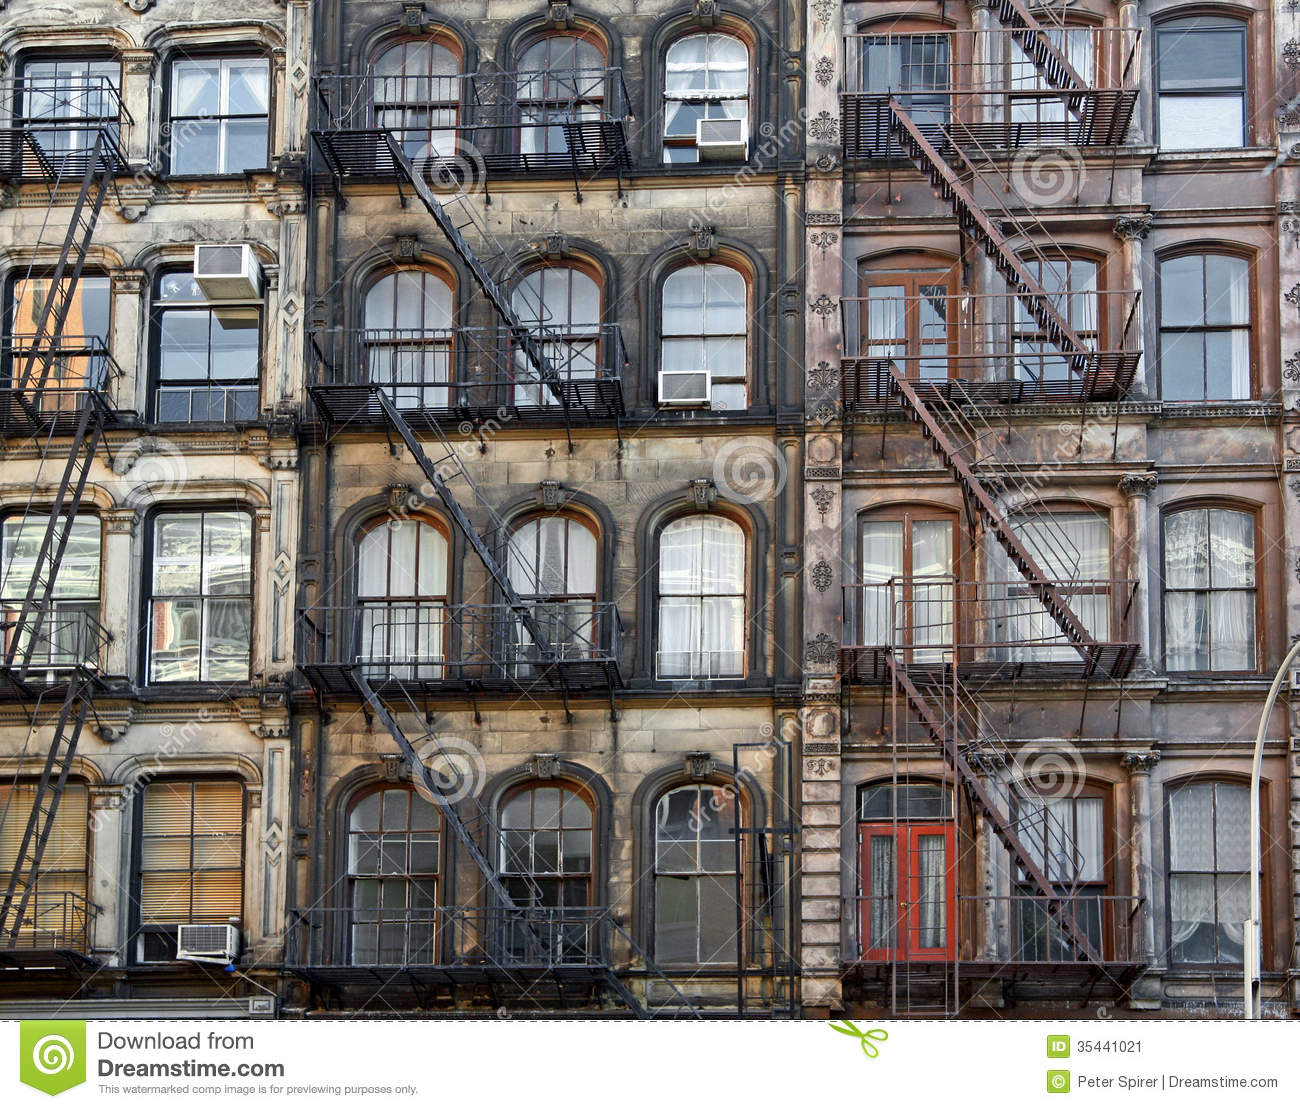 Manhattan lofts stock image Image of manhattan lofts